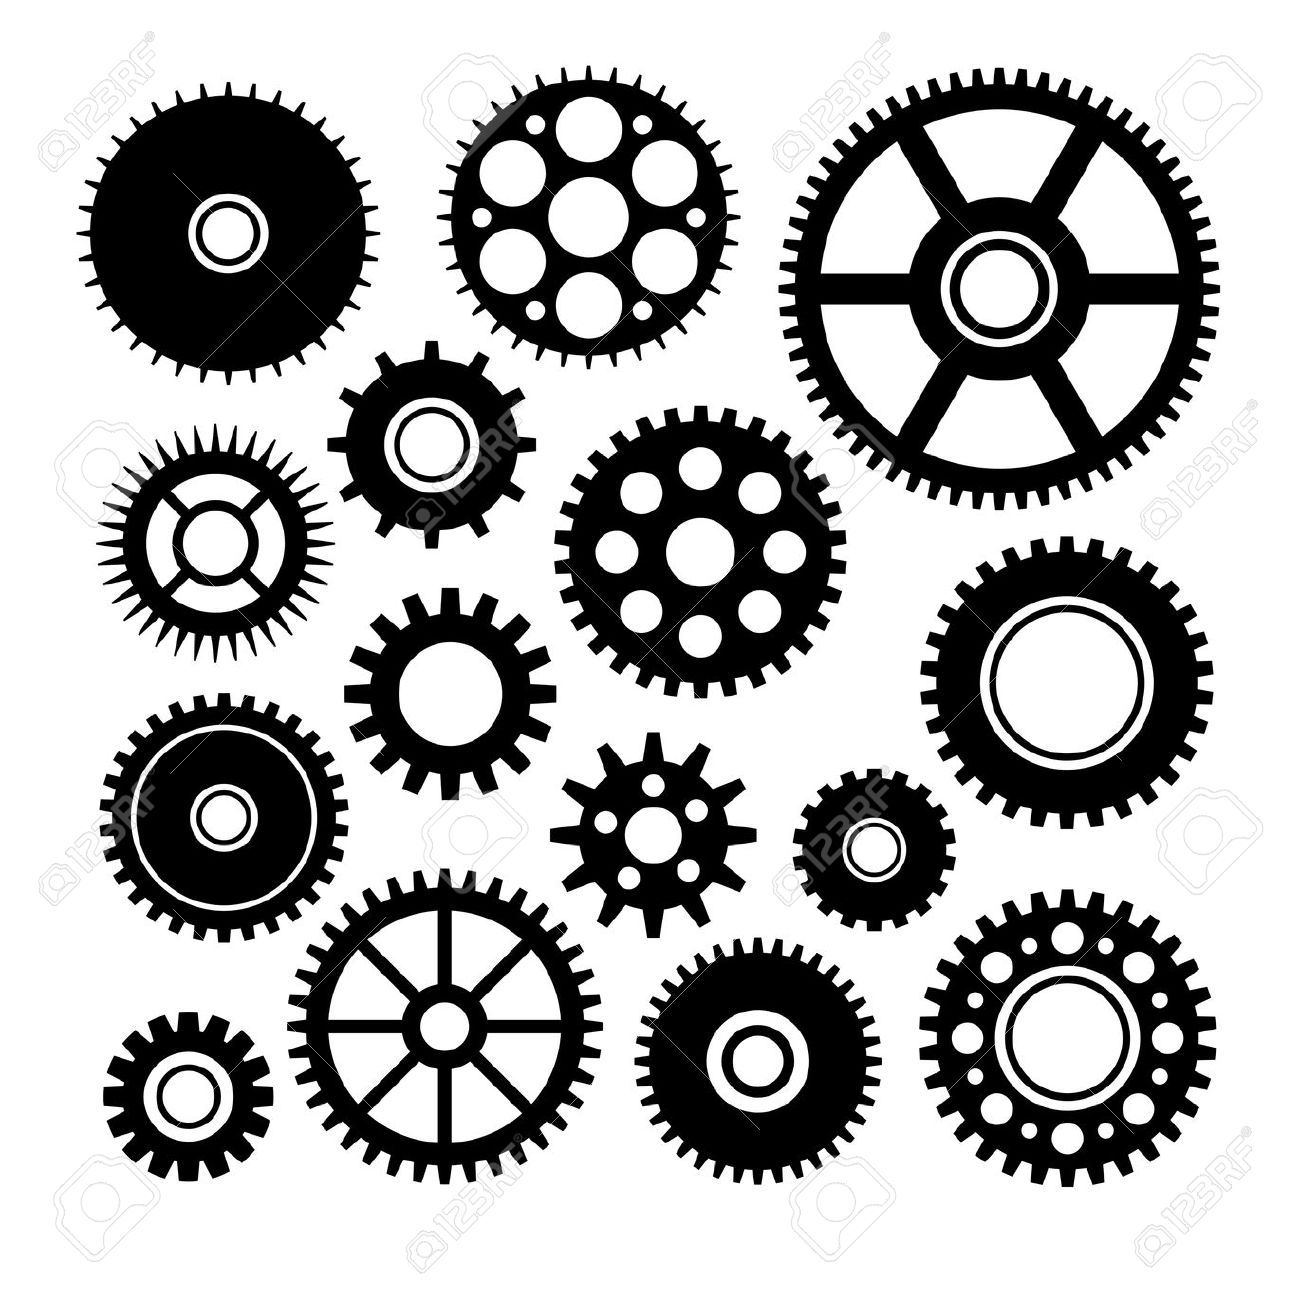 gear vector free download